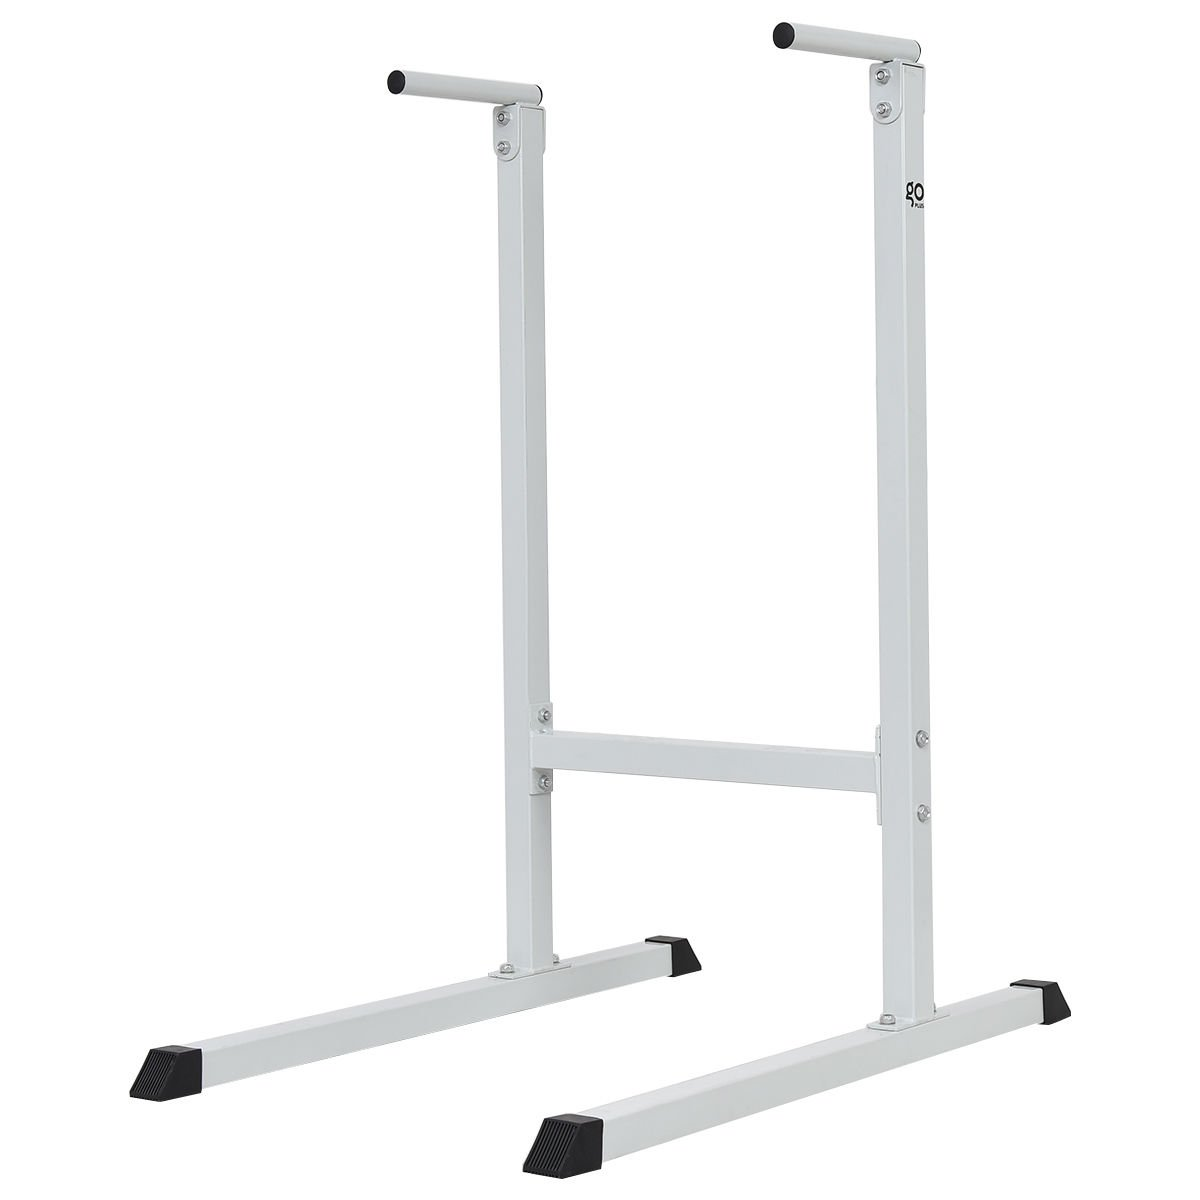 Goplus Dipping Station Heavy Duty Dip Stand Pull Push Up Parallel Bar Fitness for Bicep Tricep Exercise Workout in Home & Gym by Goplus